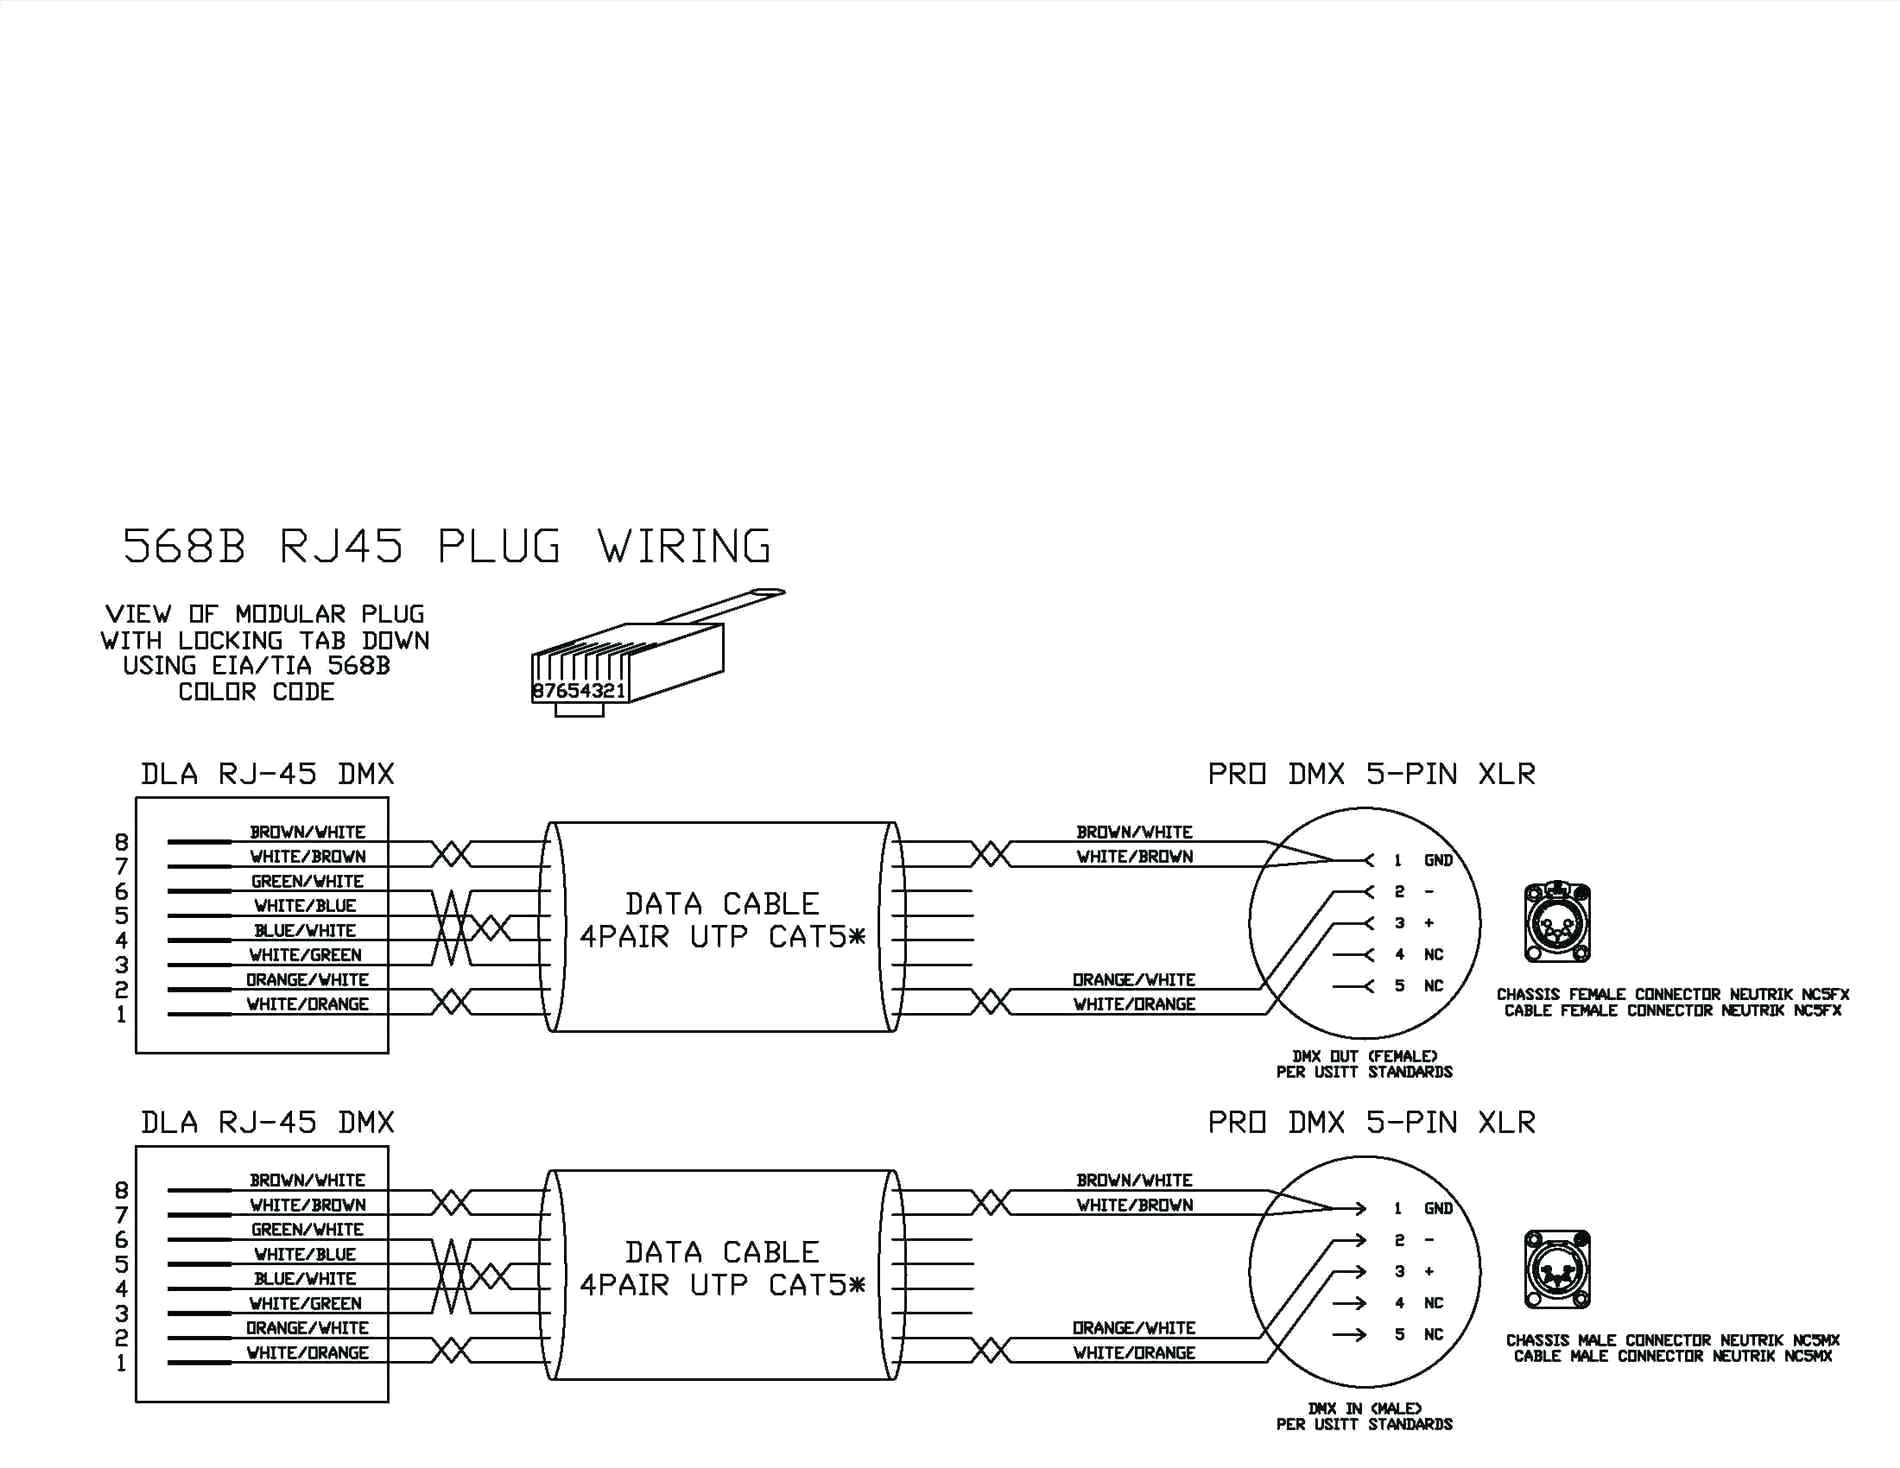 Ps2 Male Connector Wire Diagram | Wiring Diagram - Ps2 To Usb Adapter Wiring Diagram